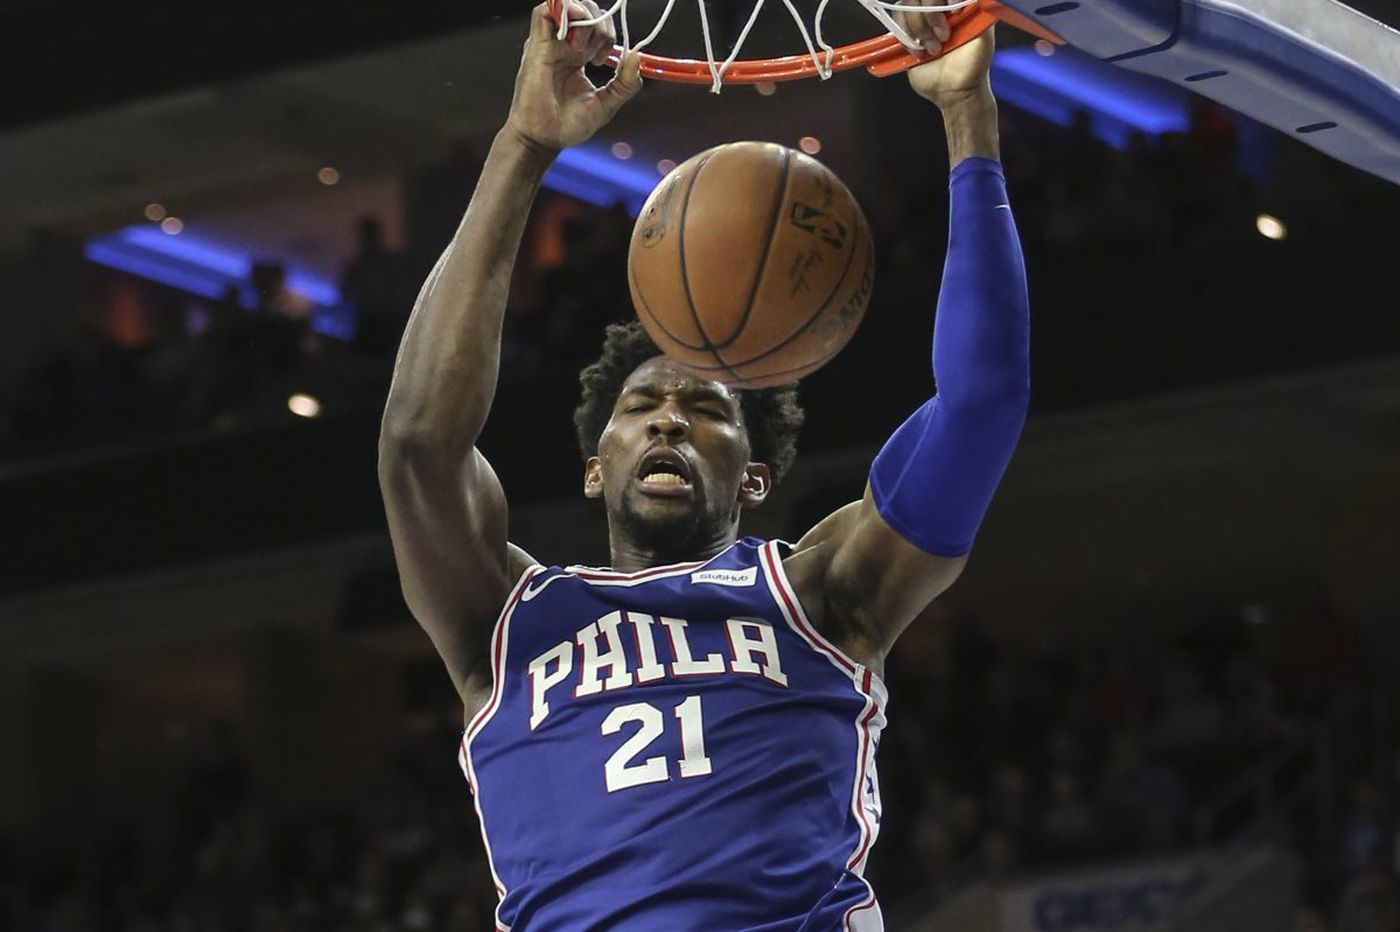 Sixers-Timberwolves preview: Looking to remain successful vs. Minnesota